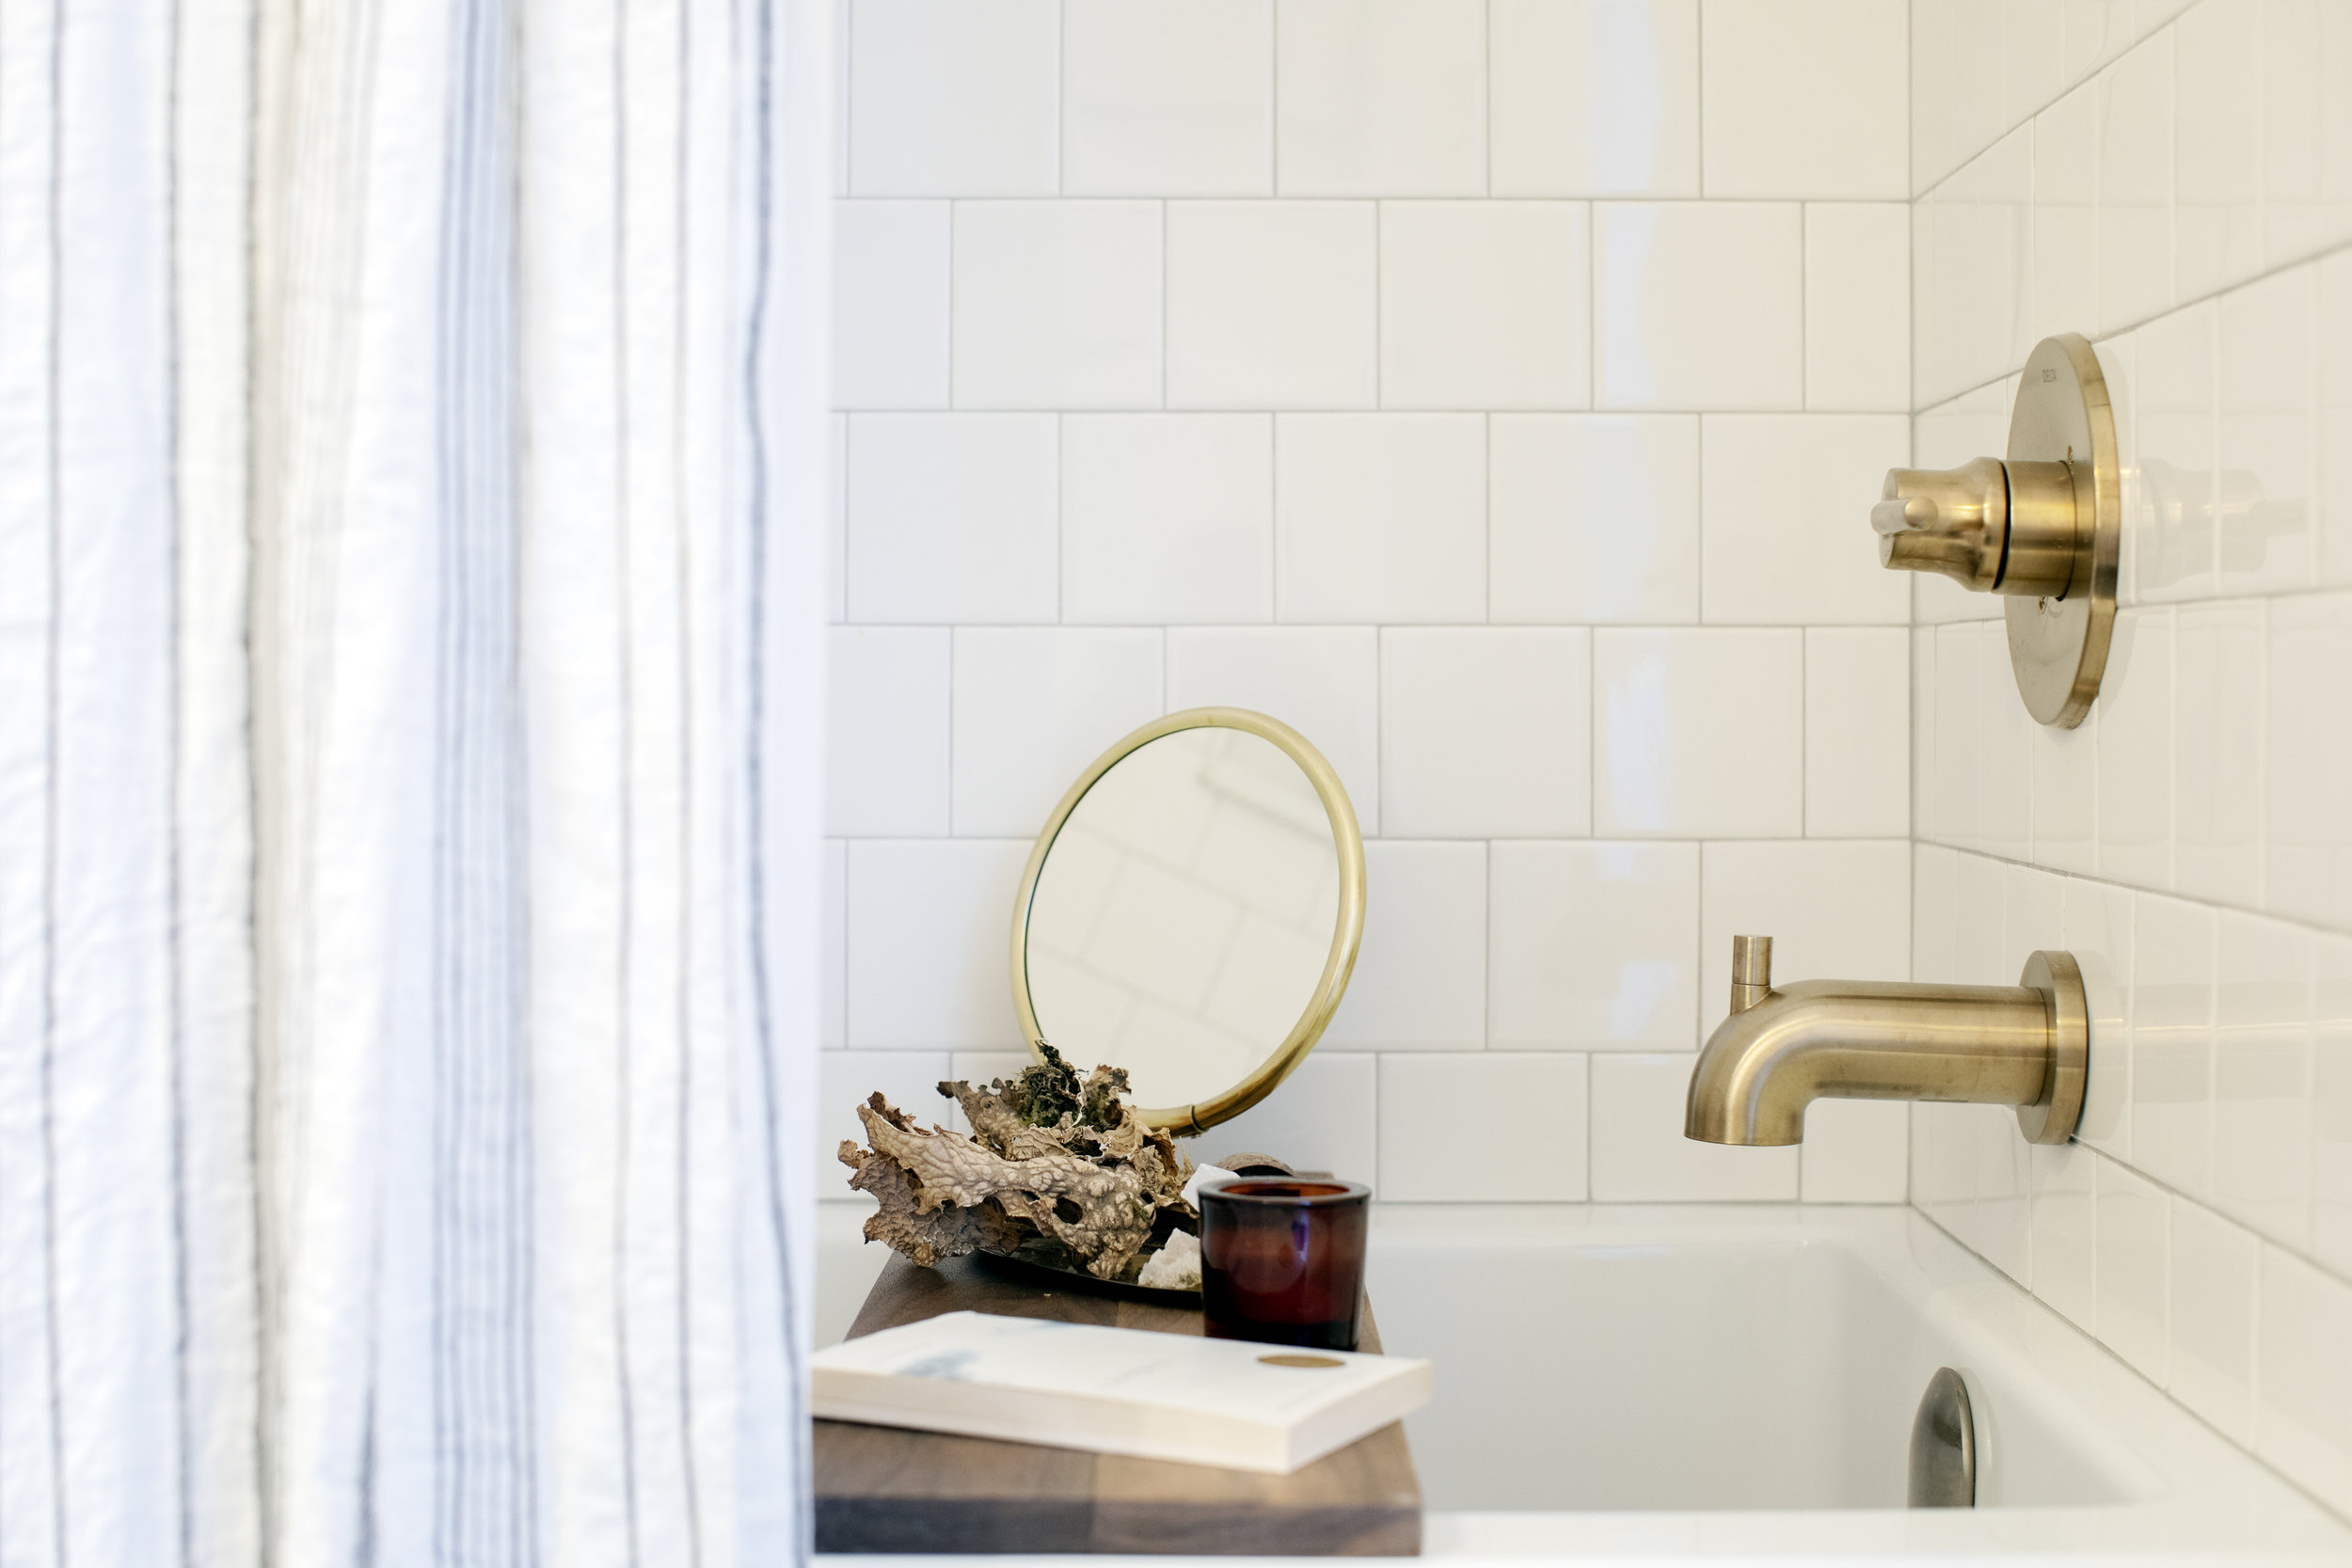 The tub in Prince Edward Street has gold fixtures and a rustic bathtub caddy with a gold mirror and a book.